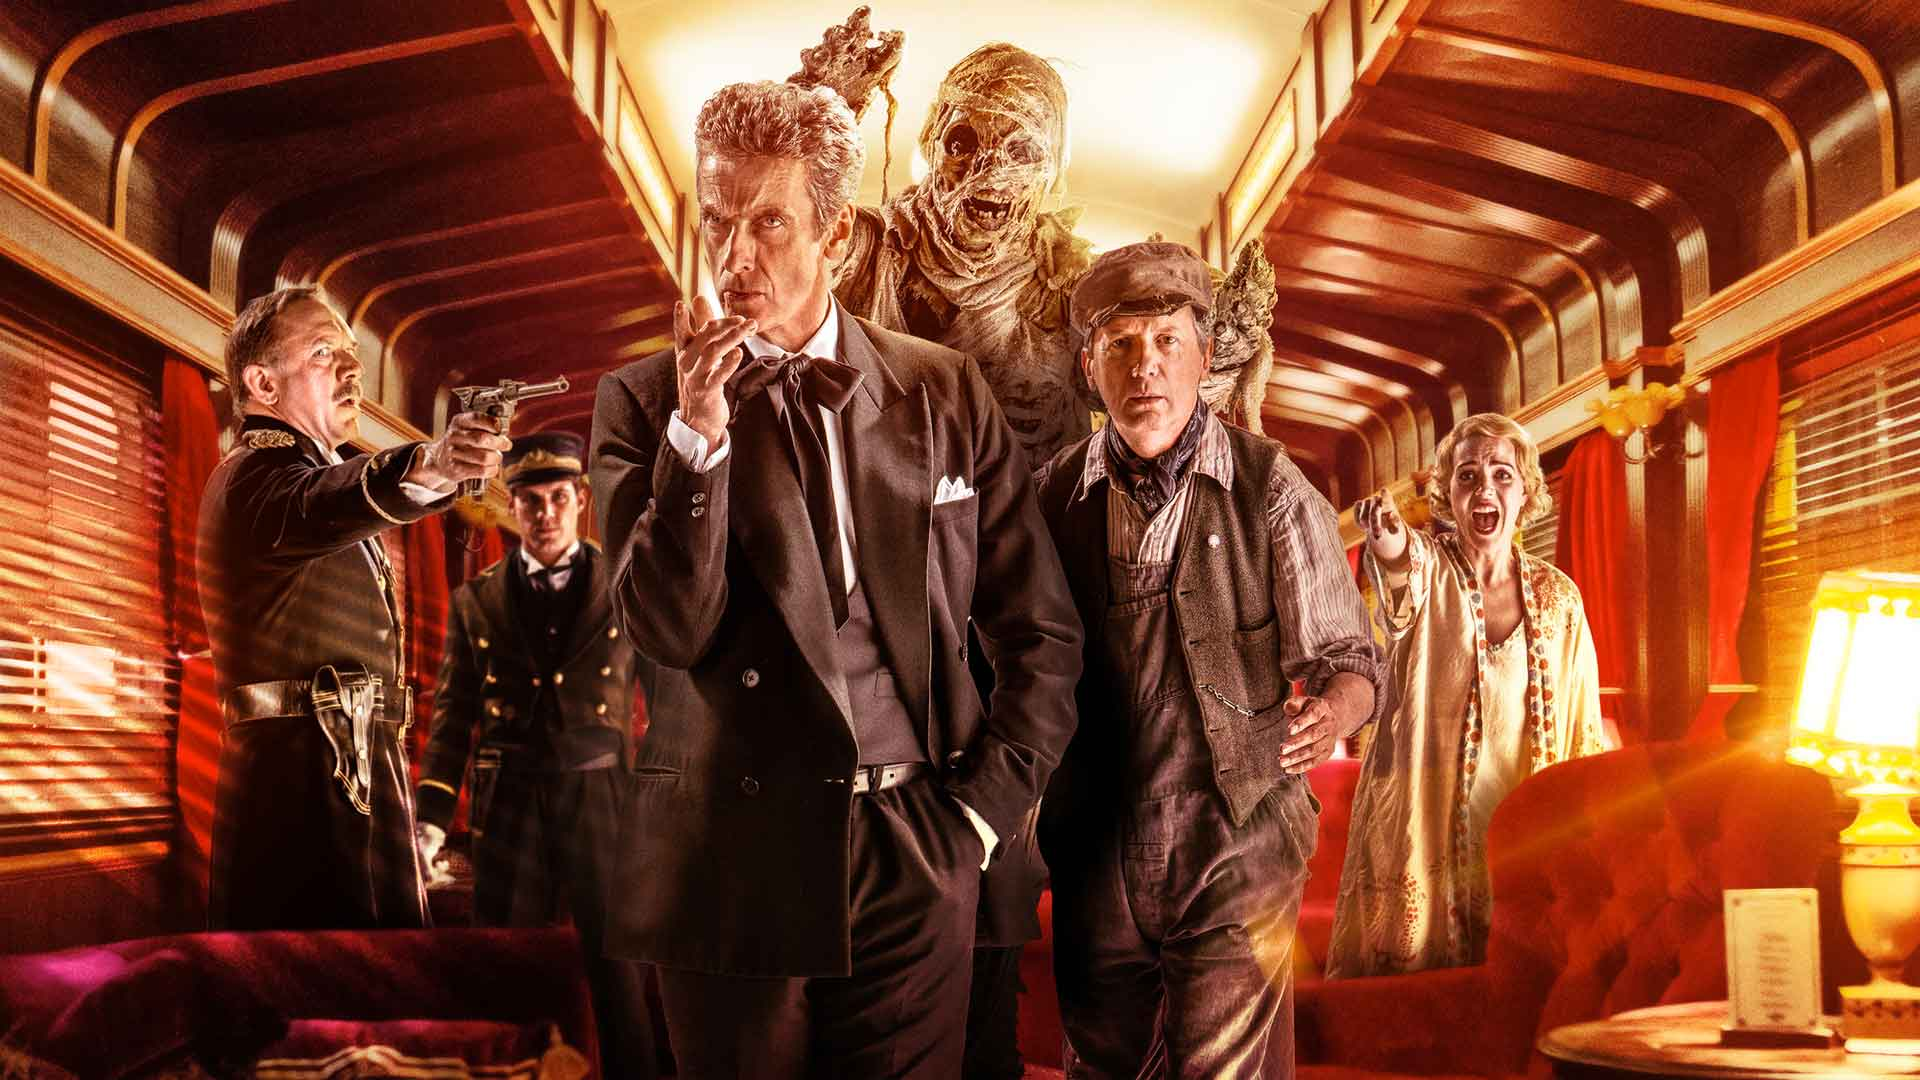 Doctor Who 10 Things You May Not Know About Mummy On The Orient